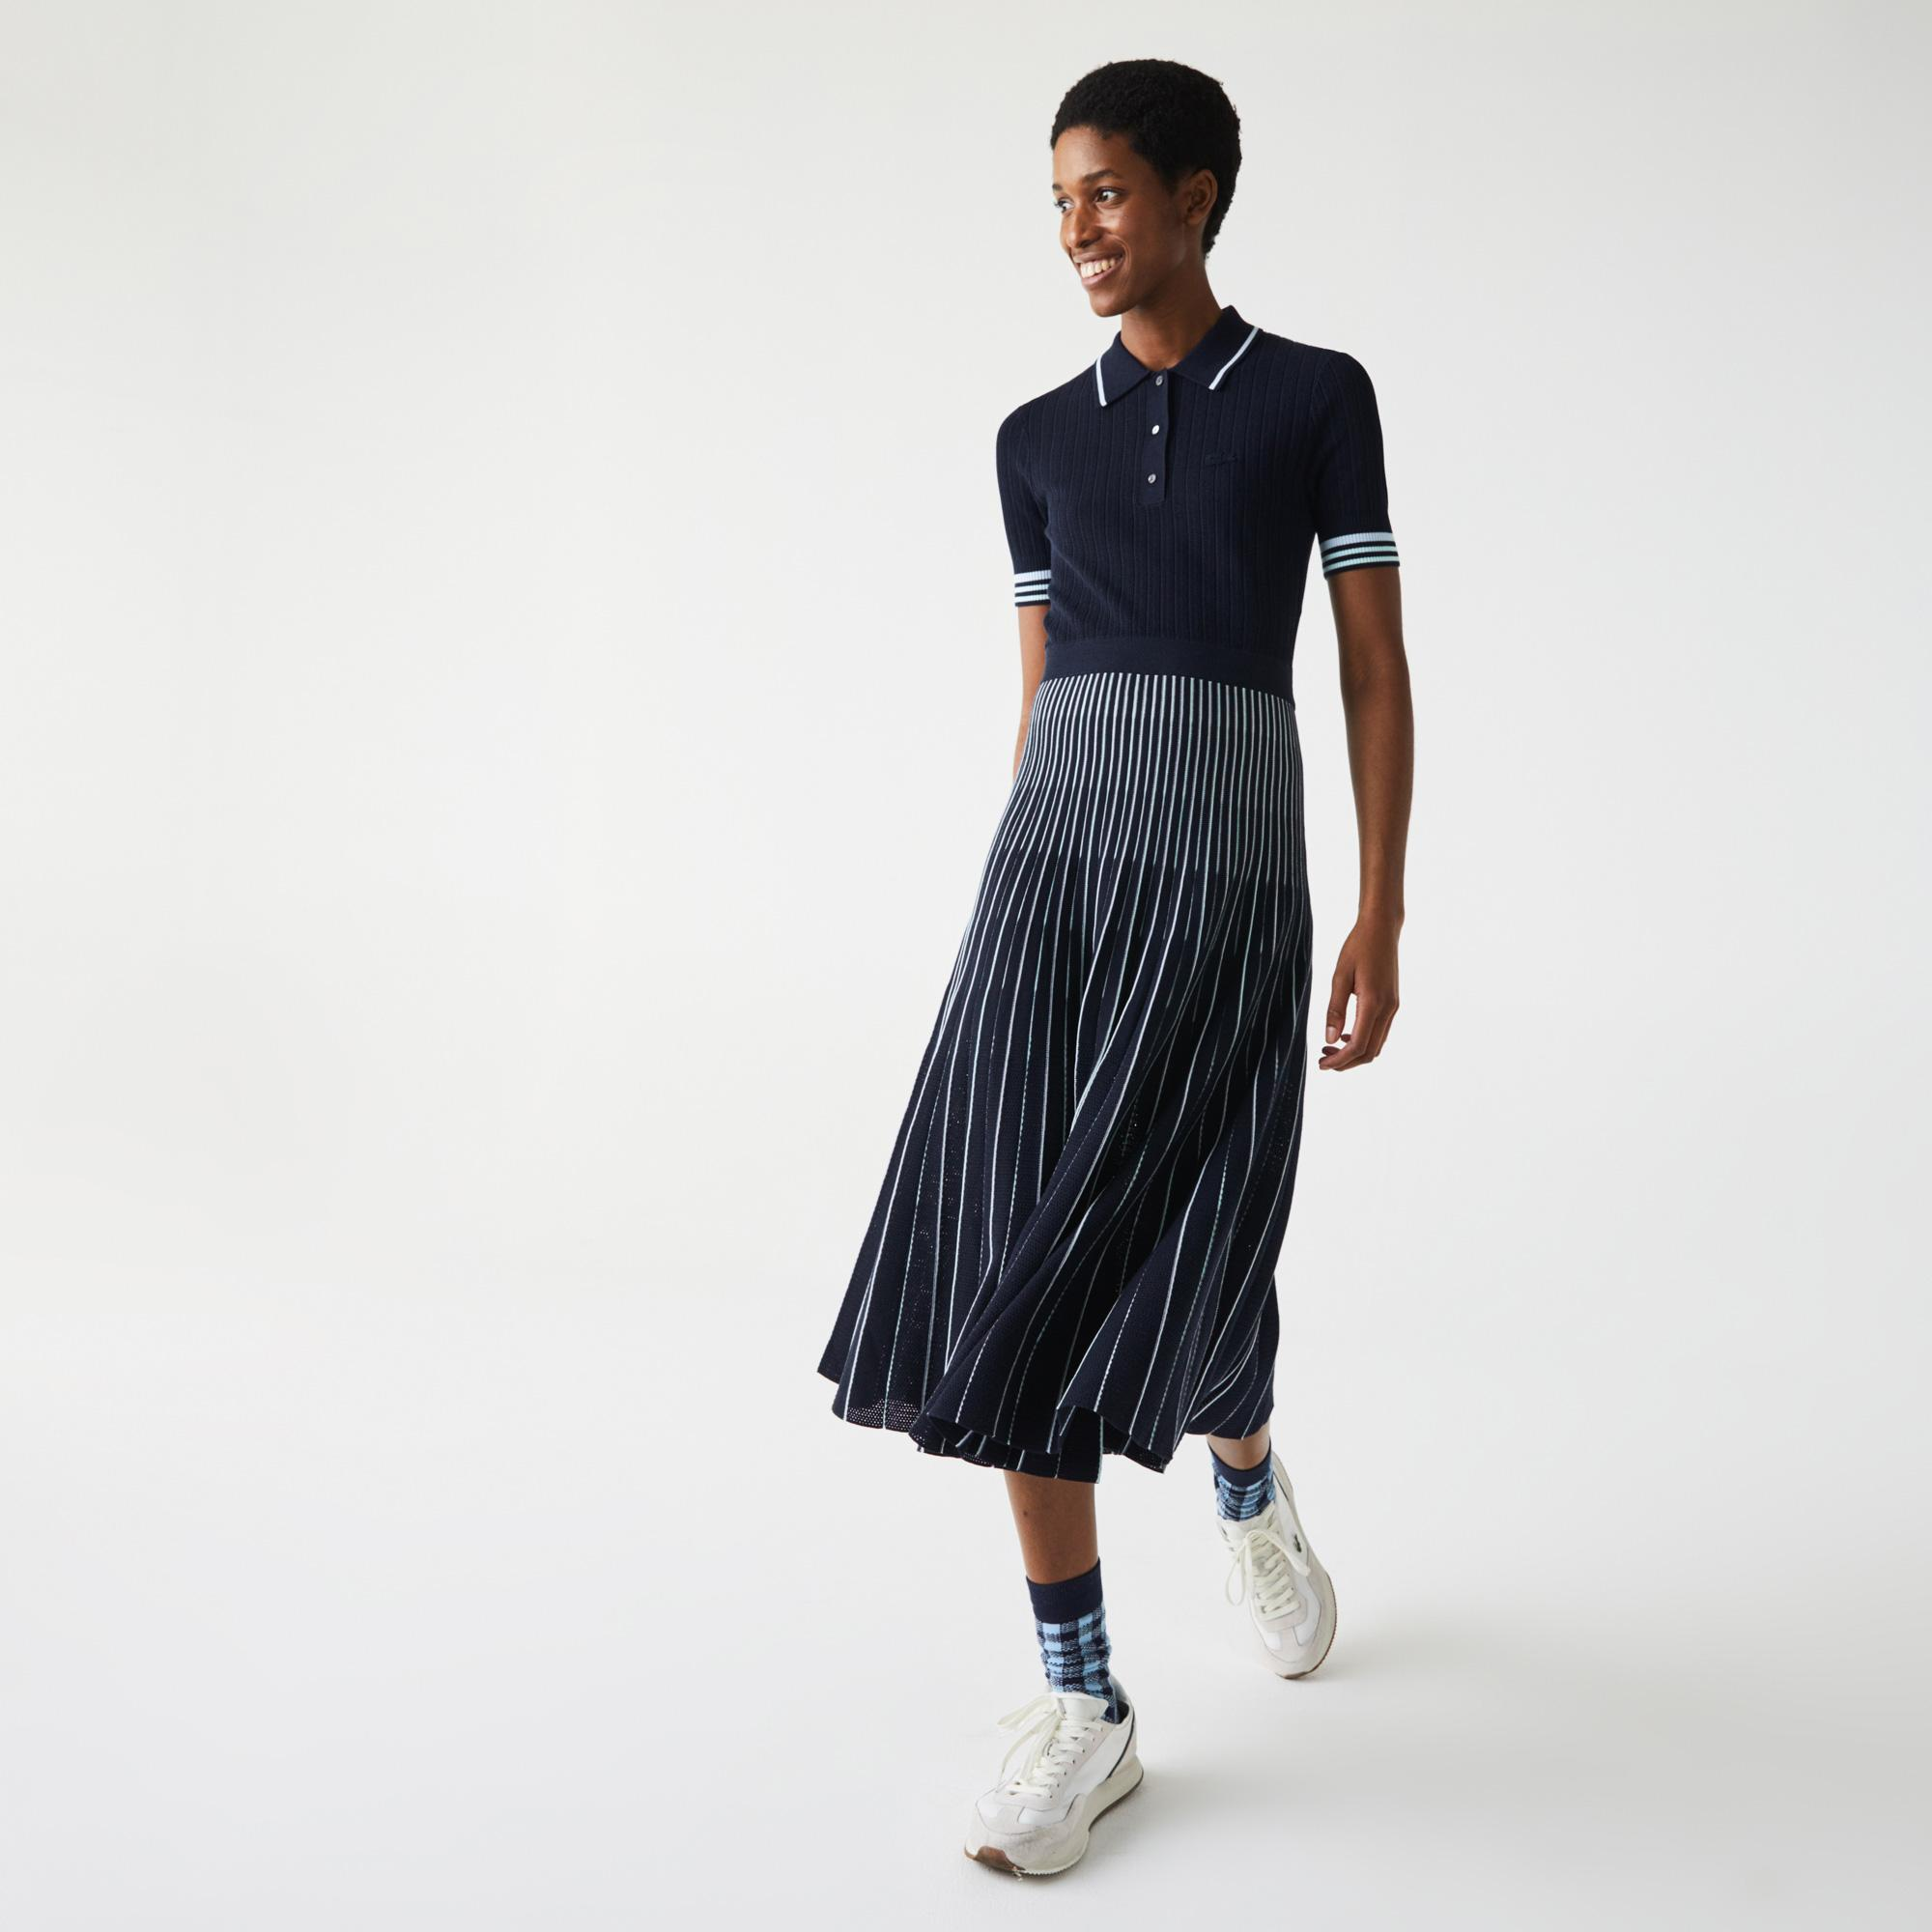 Lacoste Women's Cotton Polo Dress With Pleated Skirt